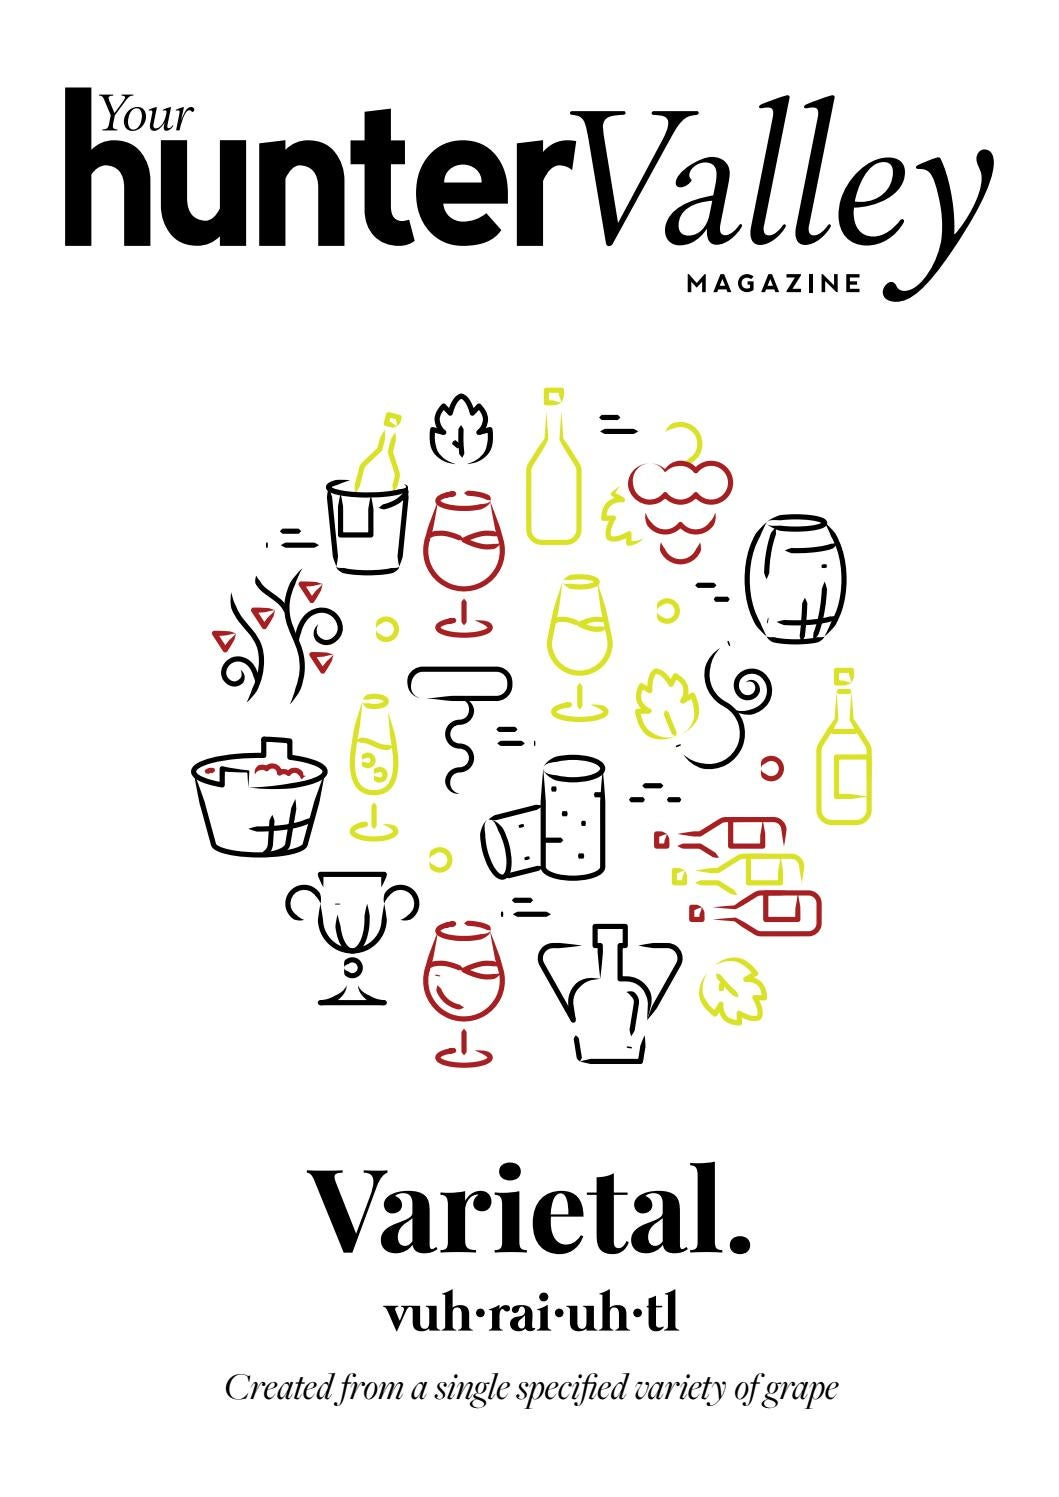 Your Hunter Valley Magazine The Varietal Issue May 2020 By Wcp Media Hunter Valley Issuu